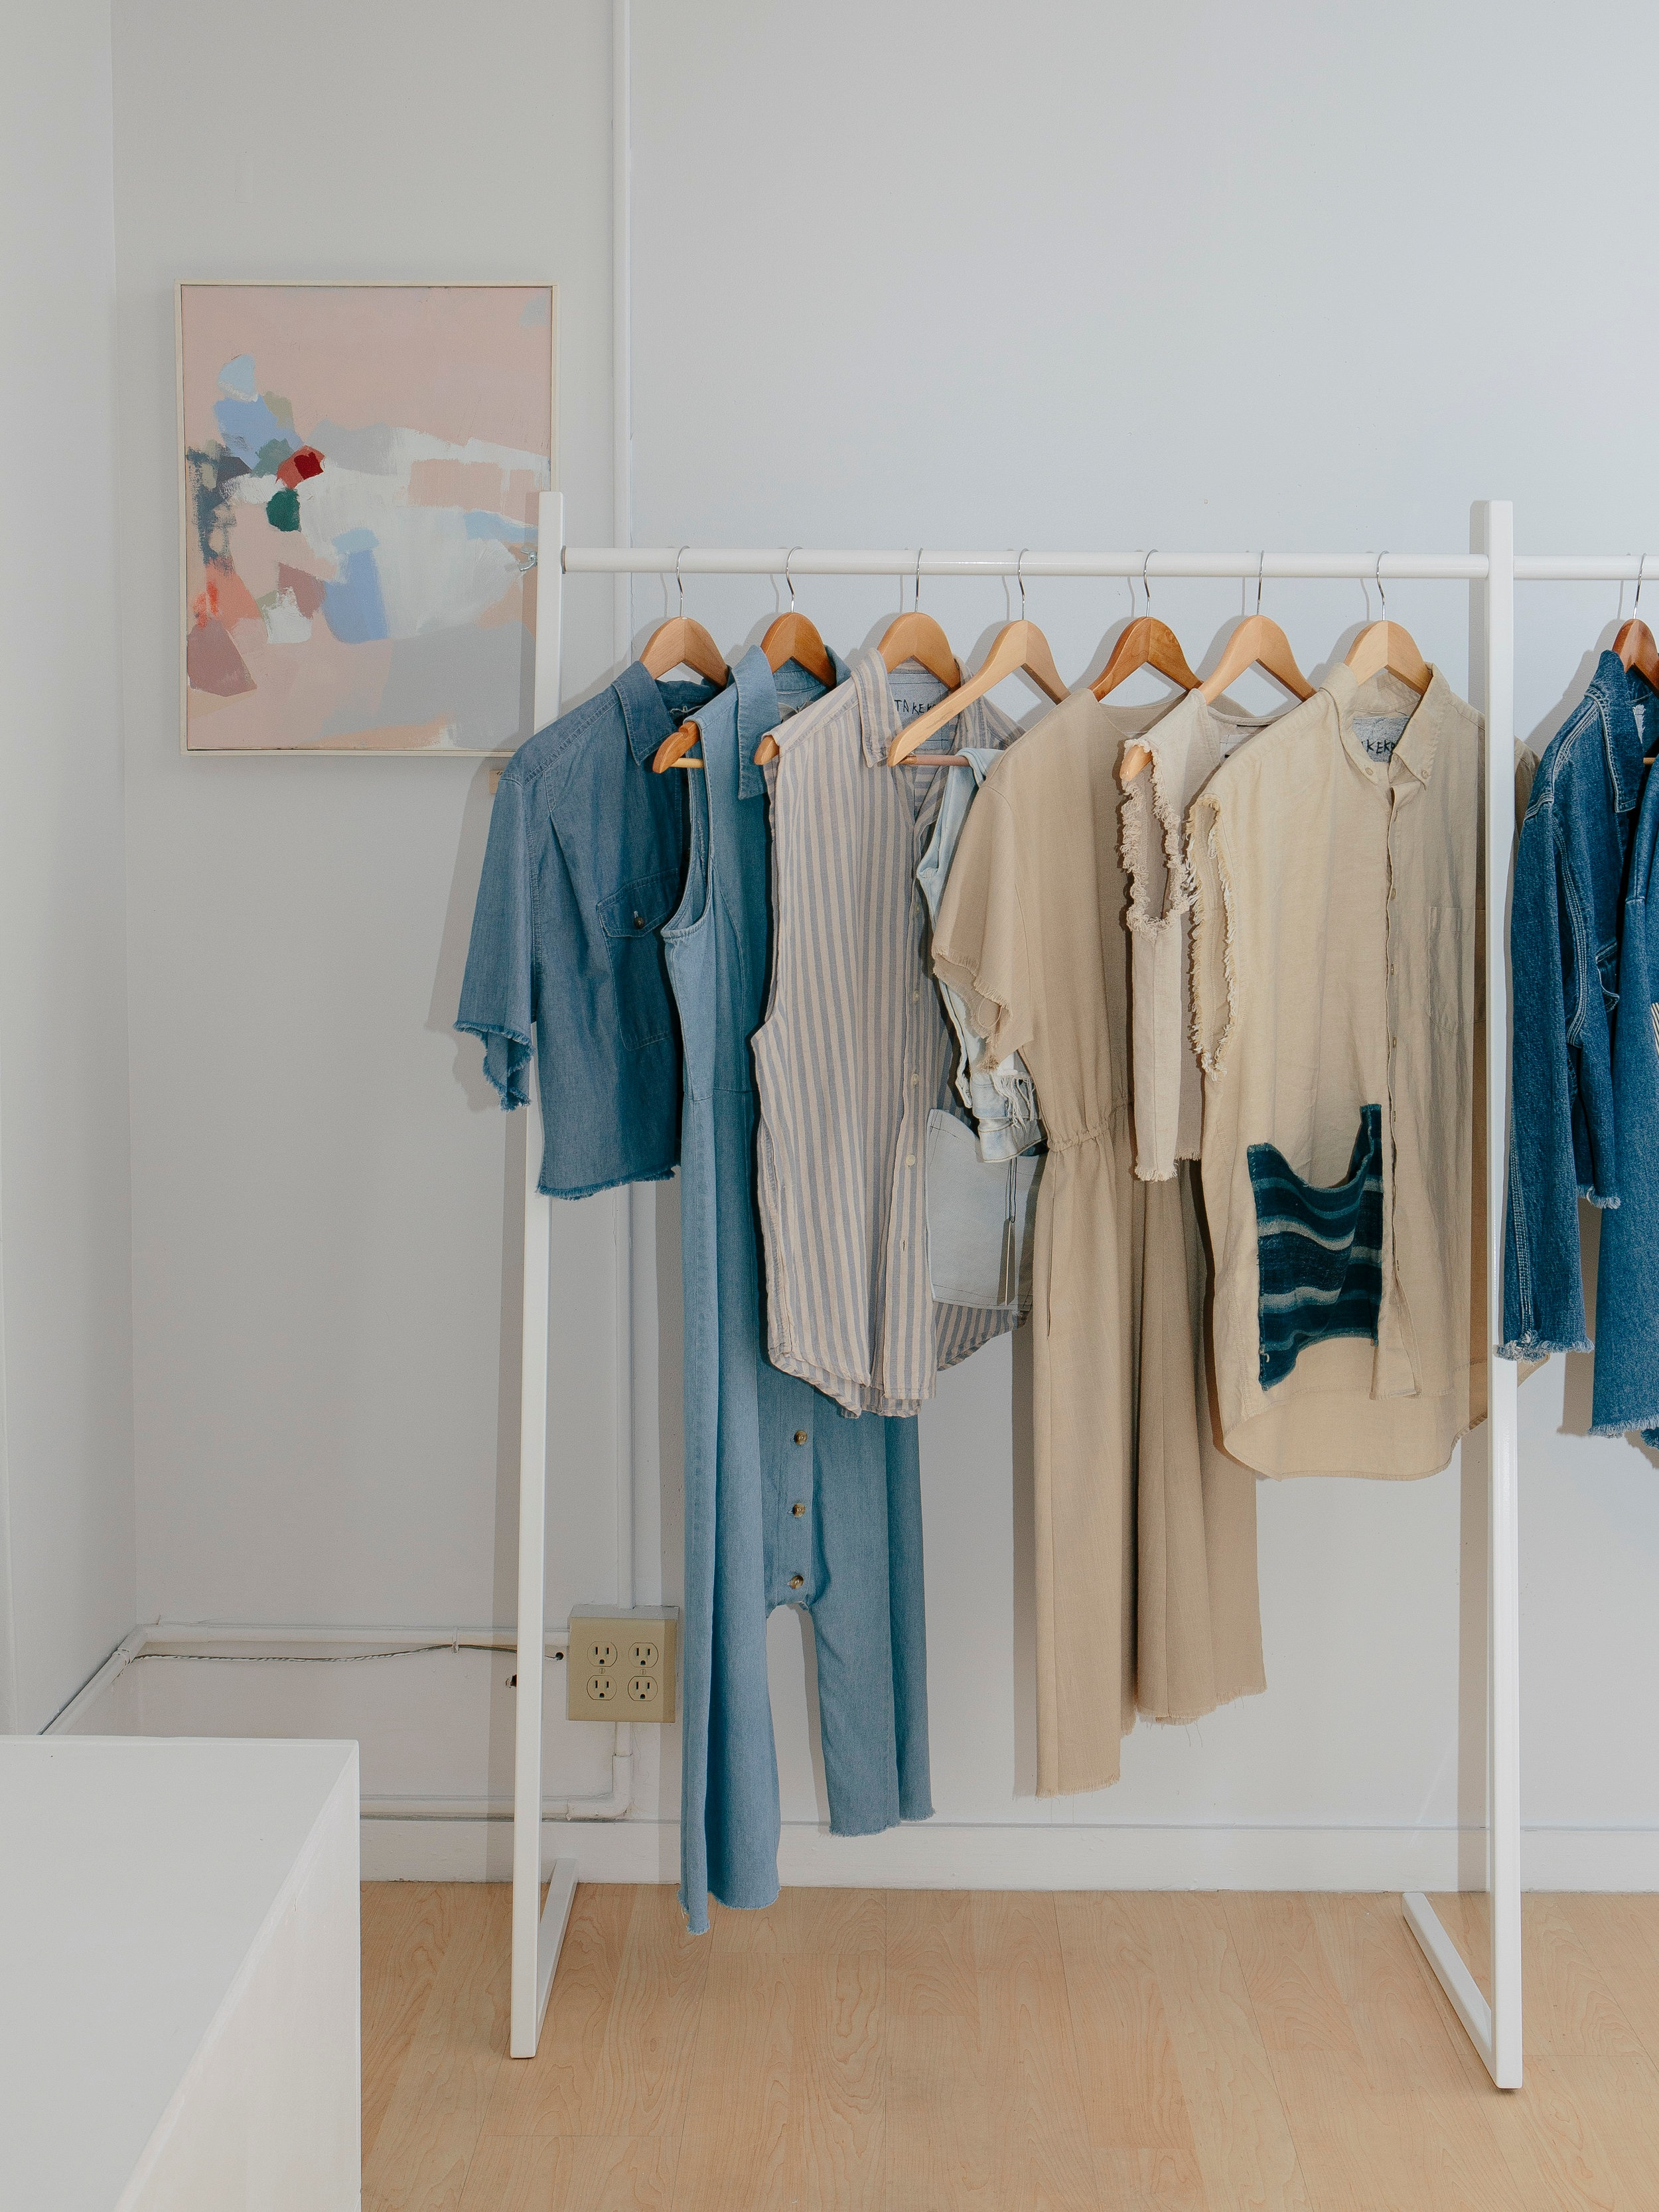 TAKEKO designs featured at Female Not Factory pop-up store in Portland, Maine.